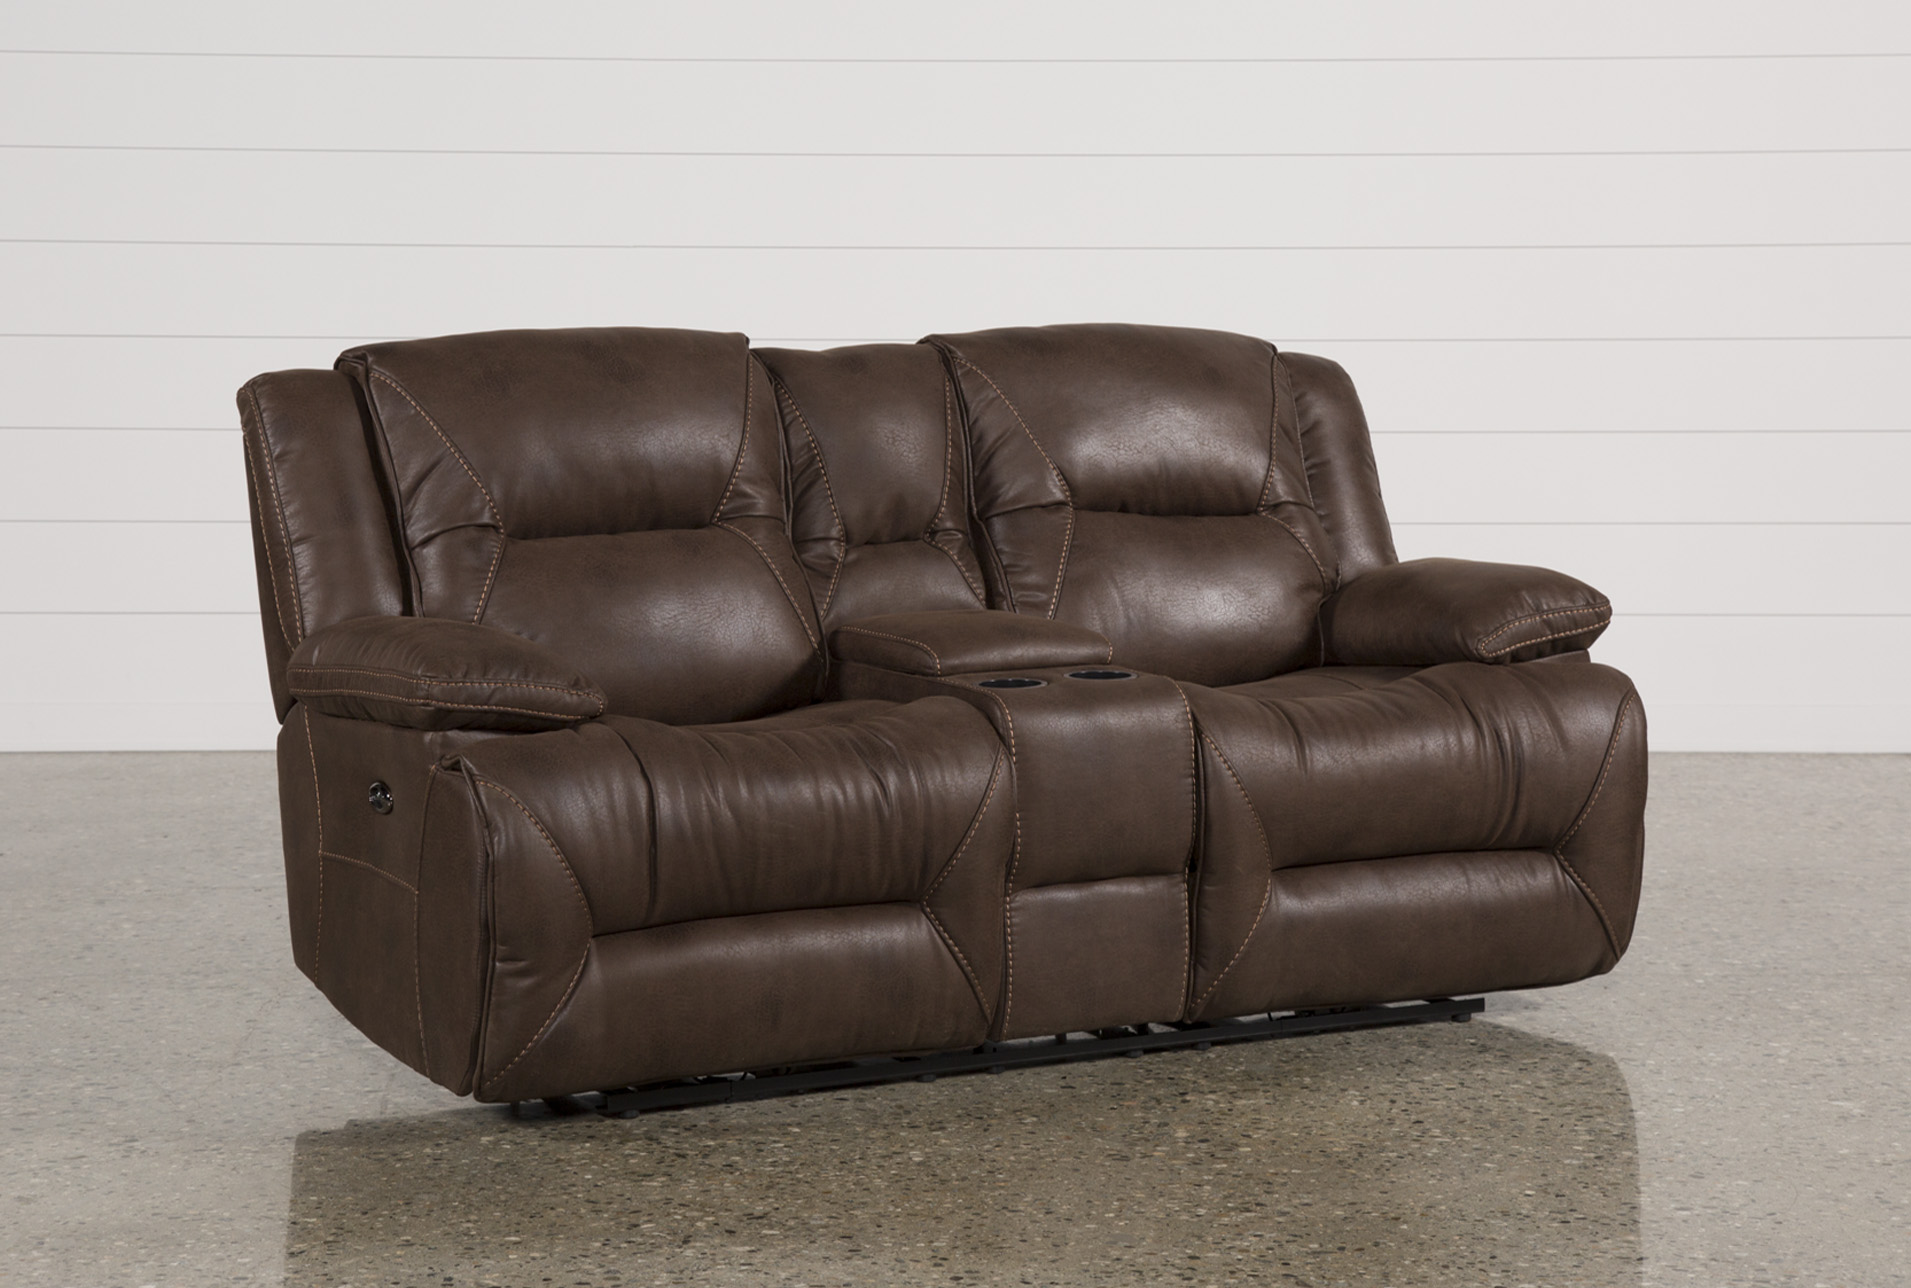 Calder Brown Power Reclining Loveseat W/Console - 360